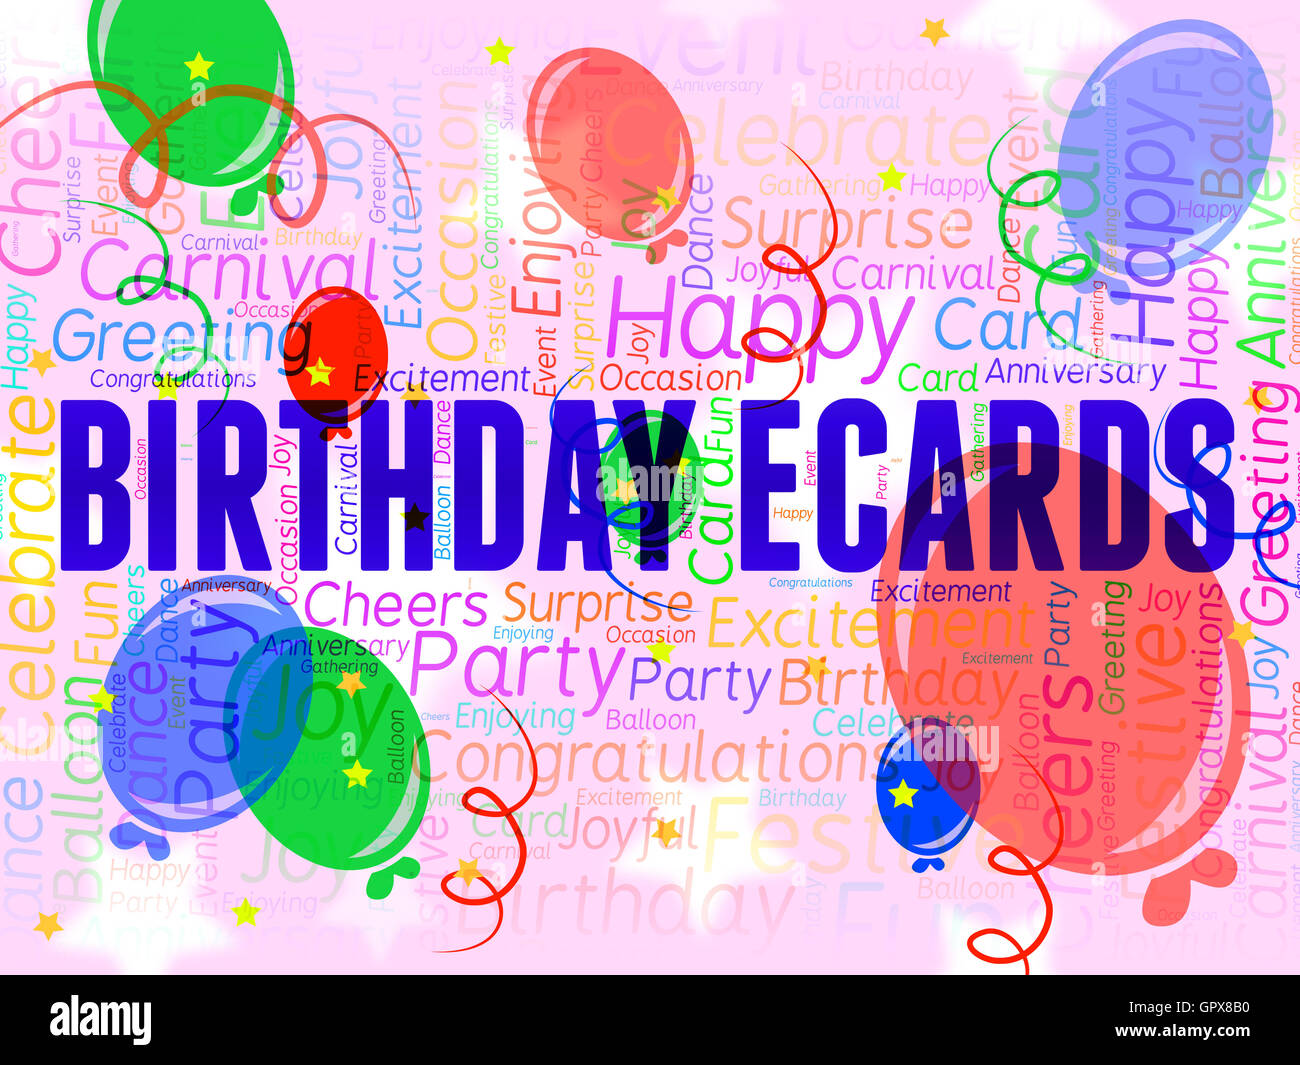 Birthday Ecards Meaning Greeting Internet And Celebration